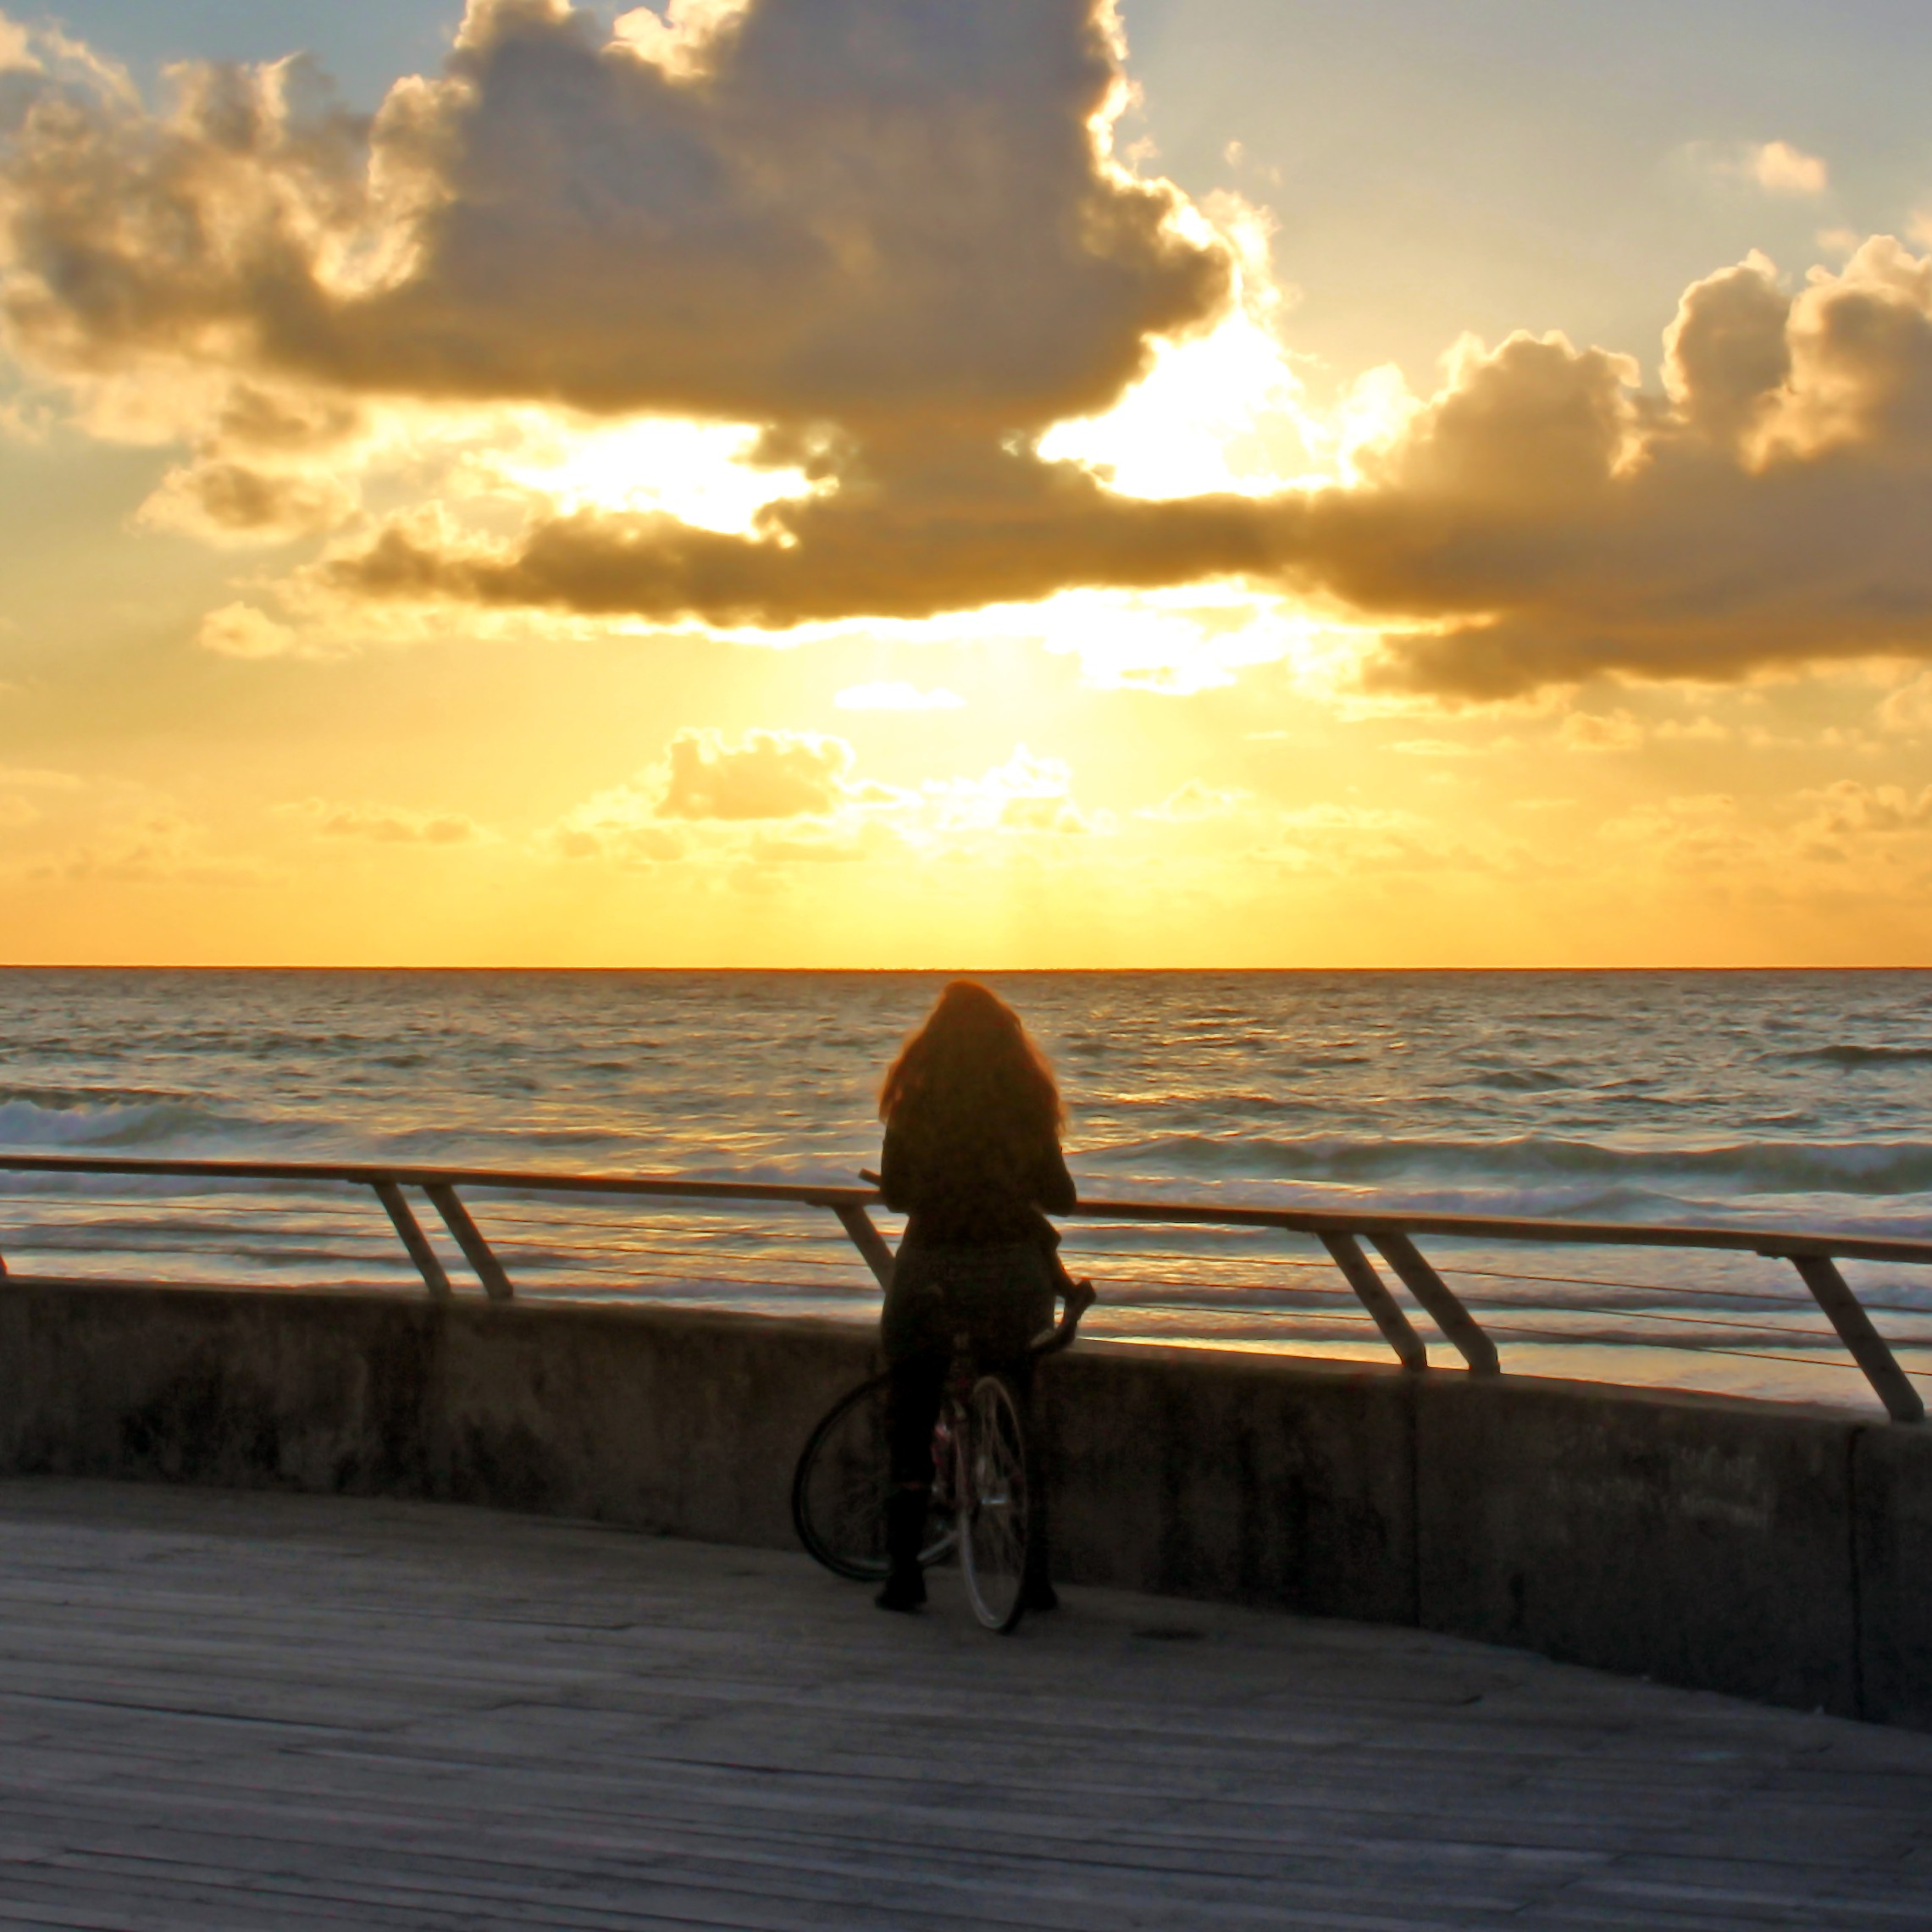 A lonely girl with a bicycle — Steemit